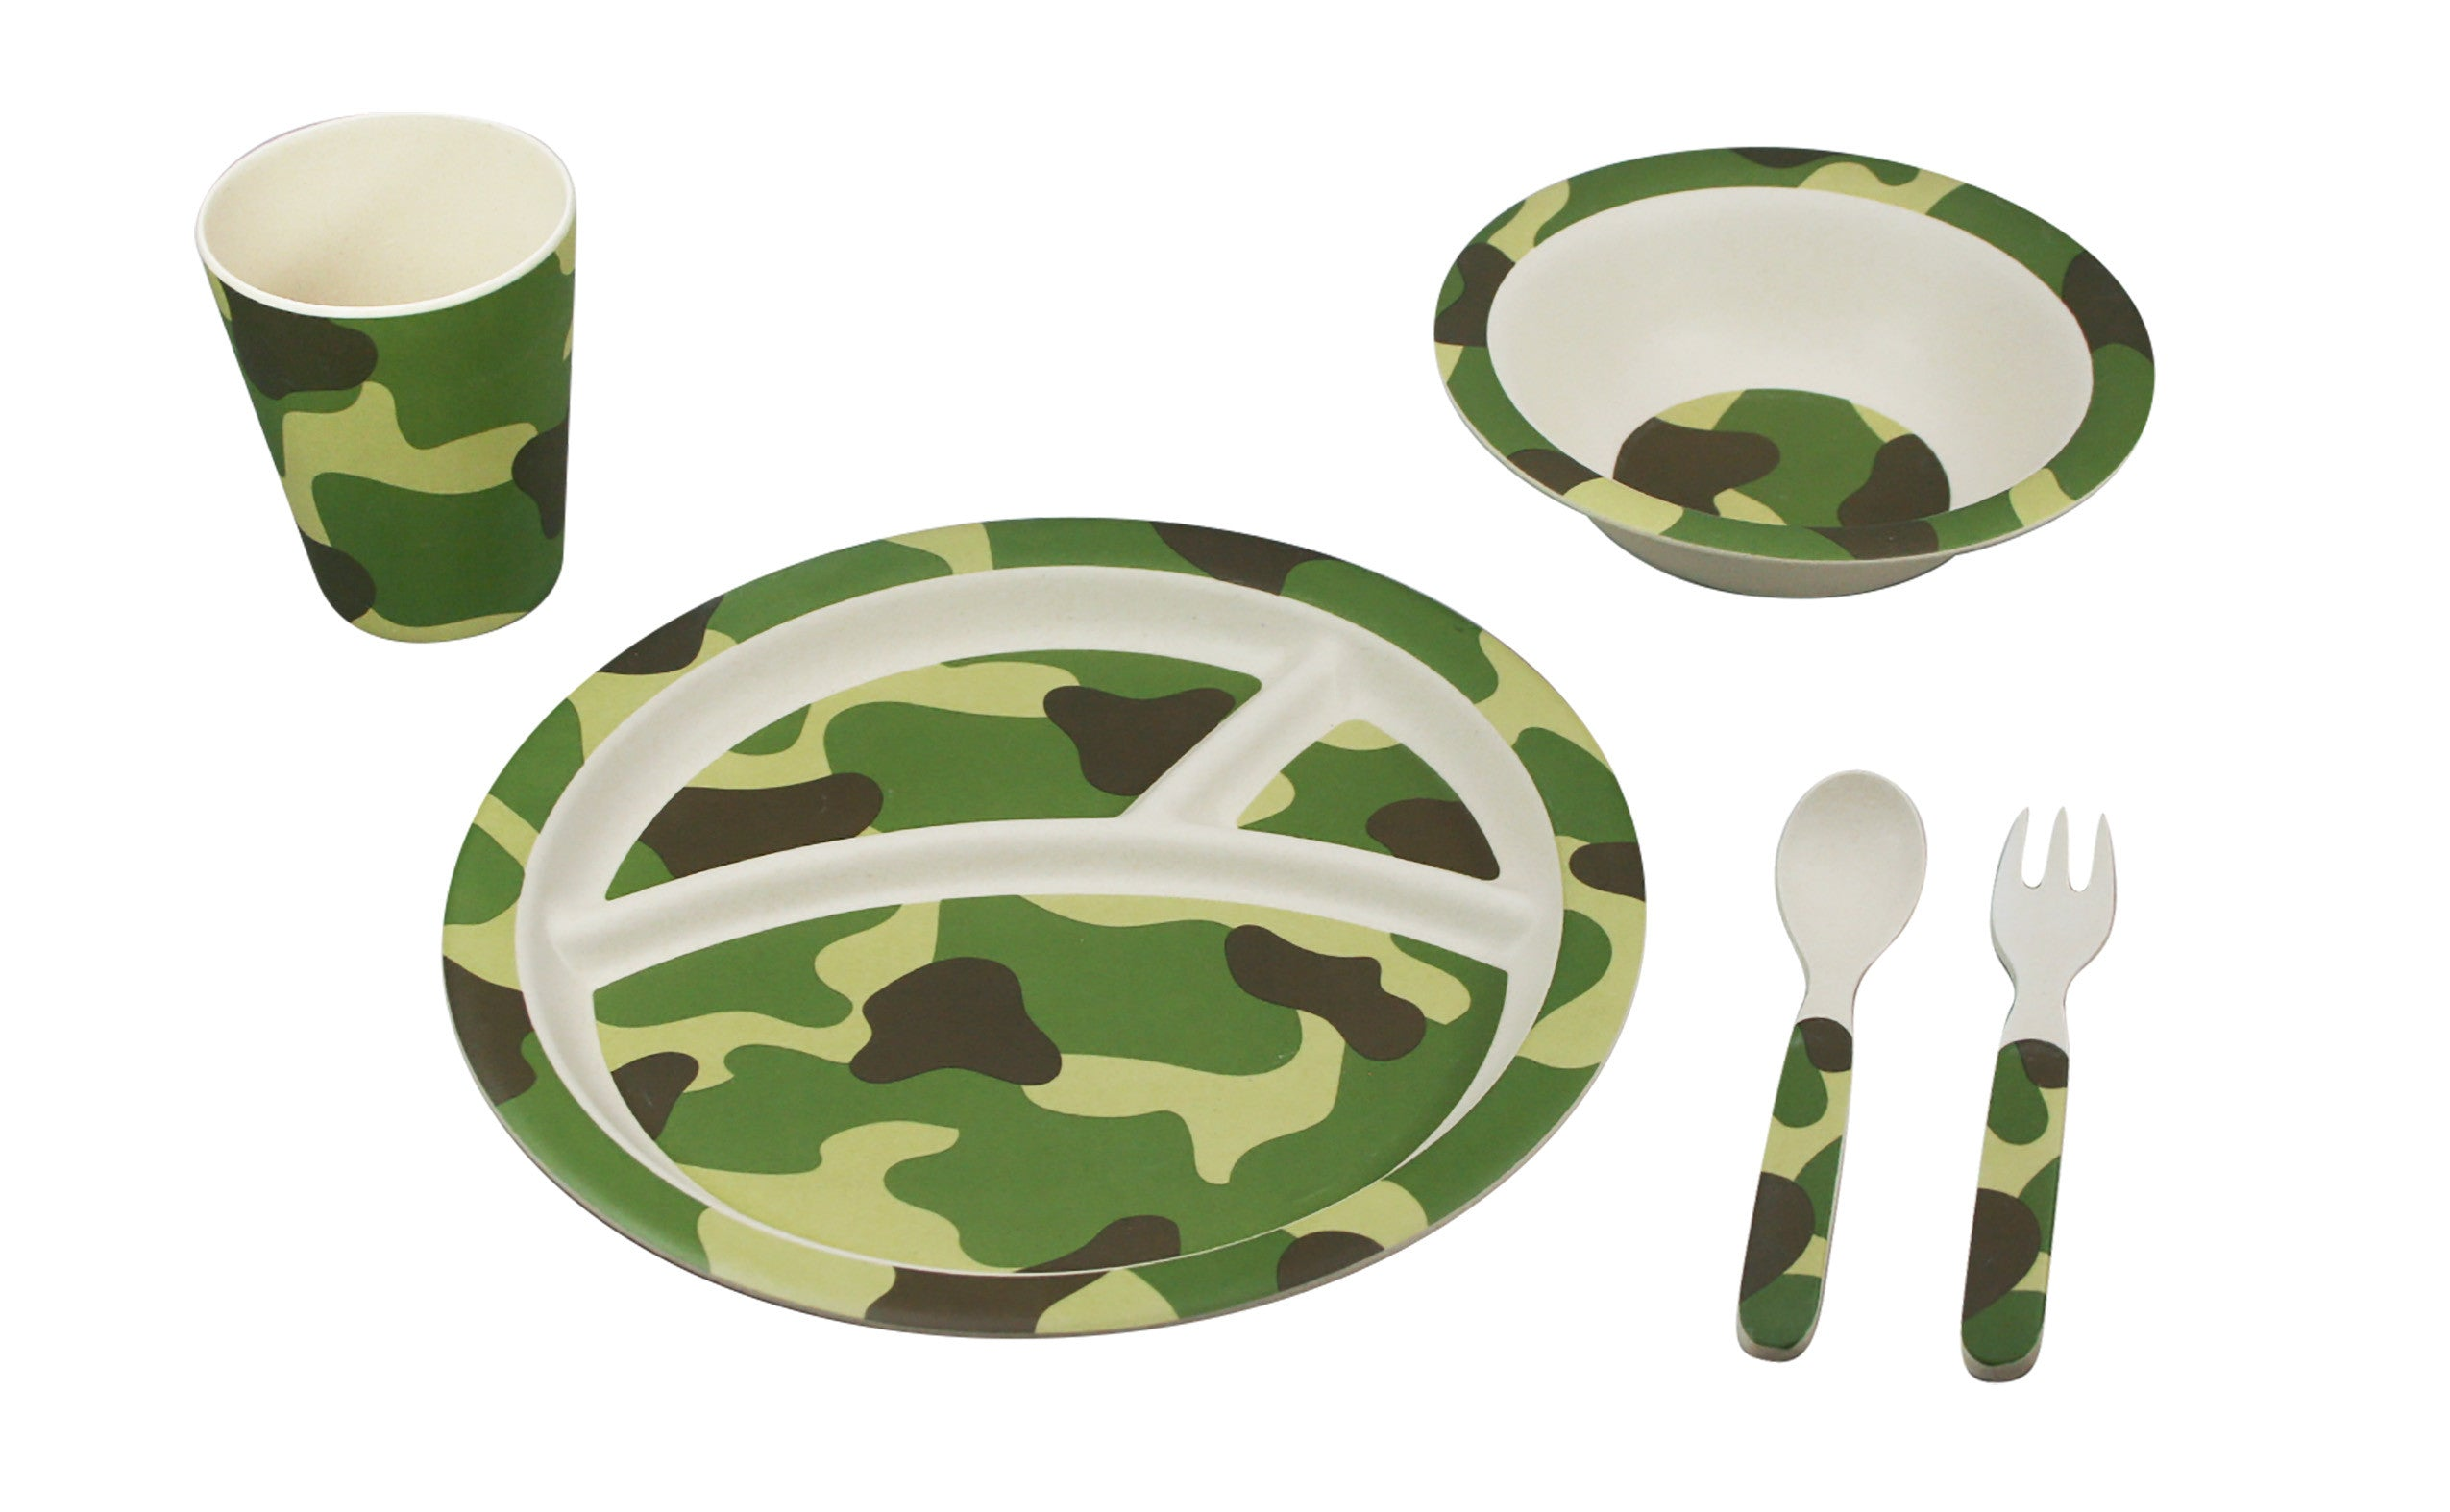 Ecobamboo Ware Babies/Kids/Toddlers Bamboo Dinnerware Set Camouflage Set of 5  sc 1 st  Paperless Kitchen & Camouflage Dinnerware Gift Set for Kids from Bamboo Studio 5 piece ...